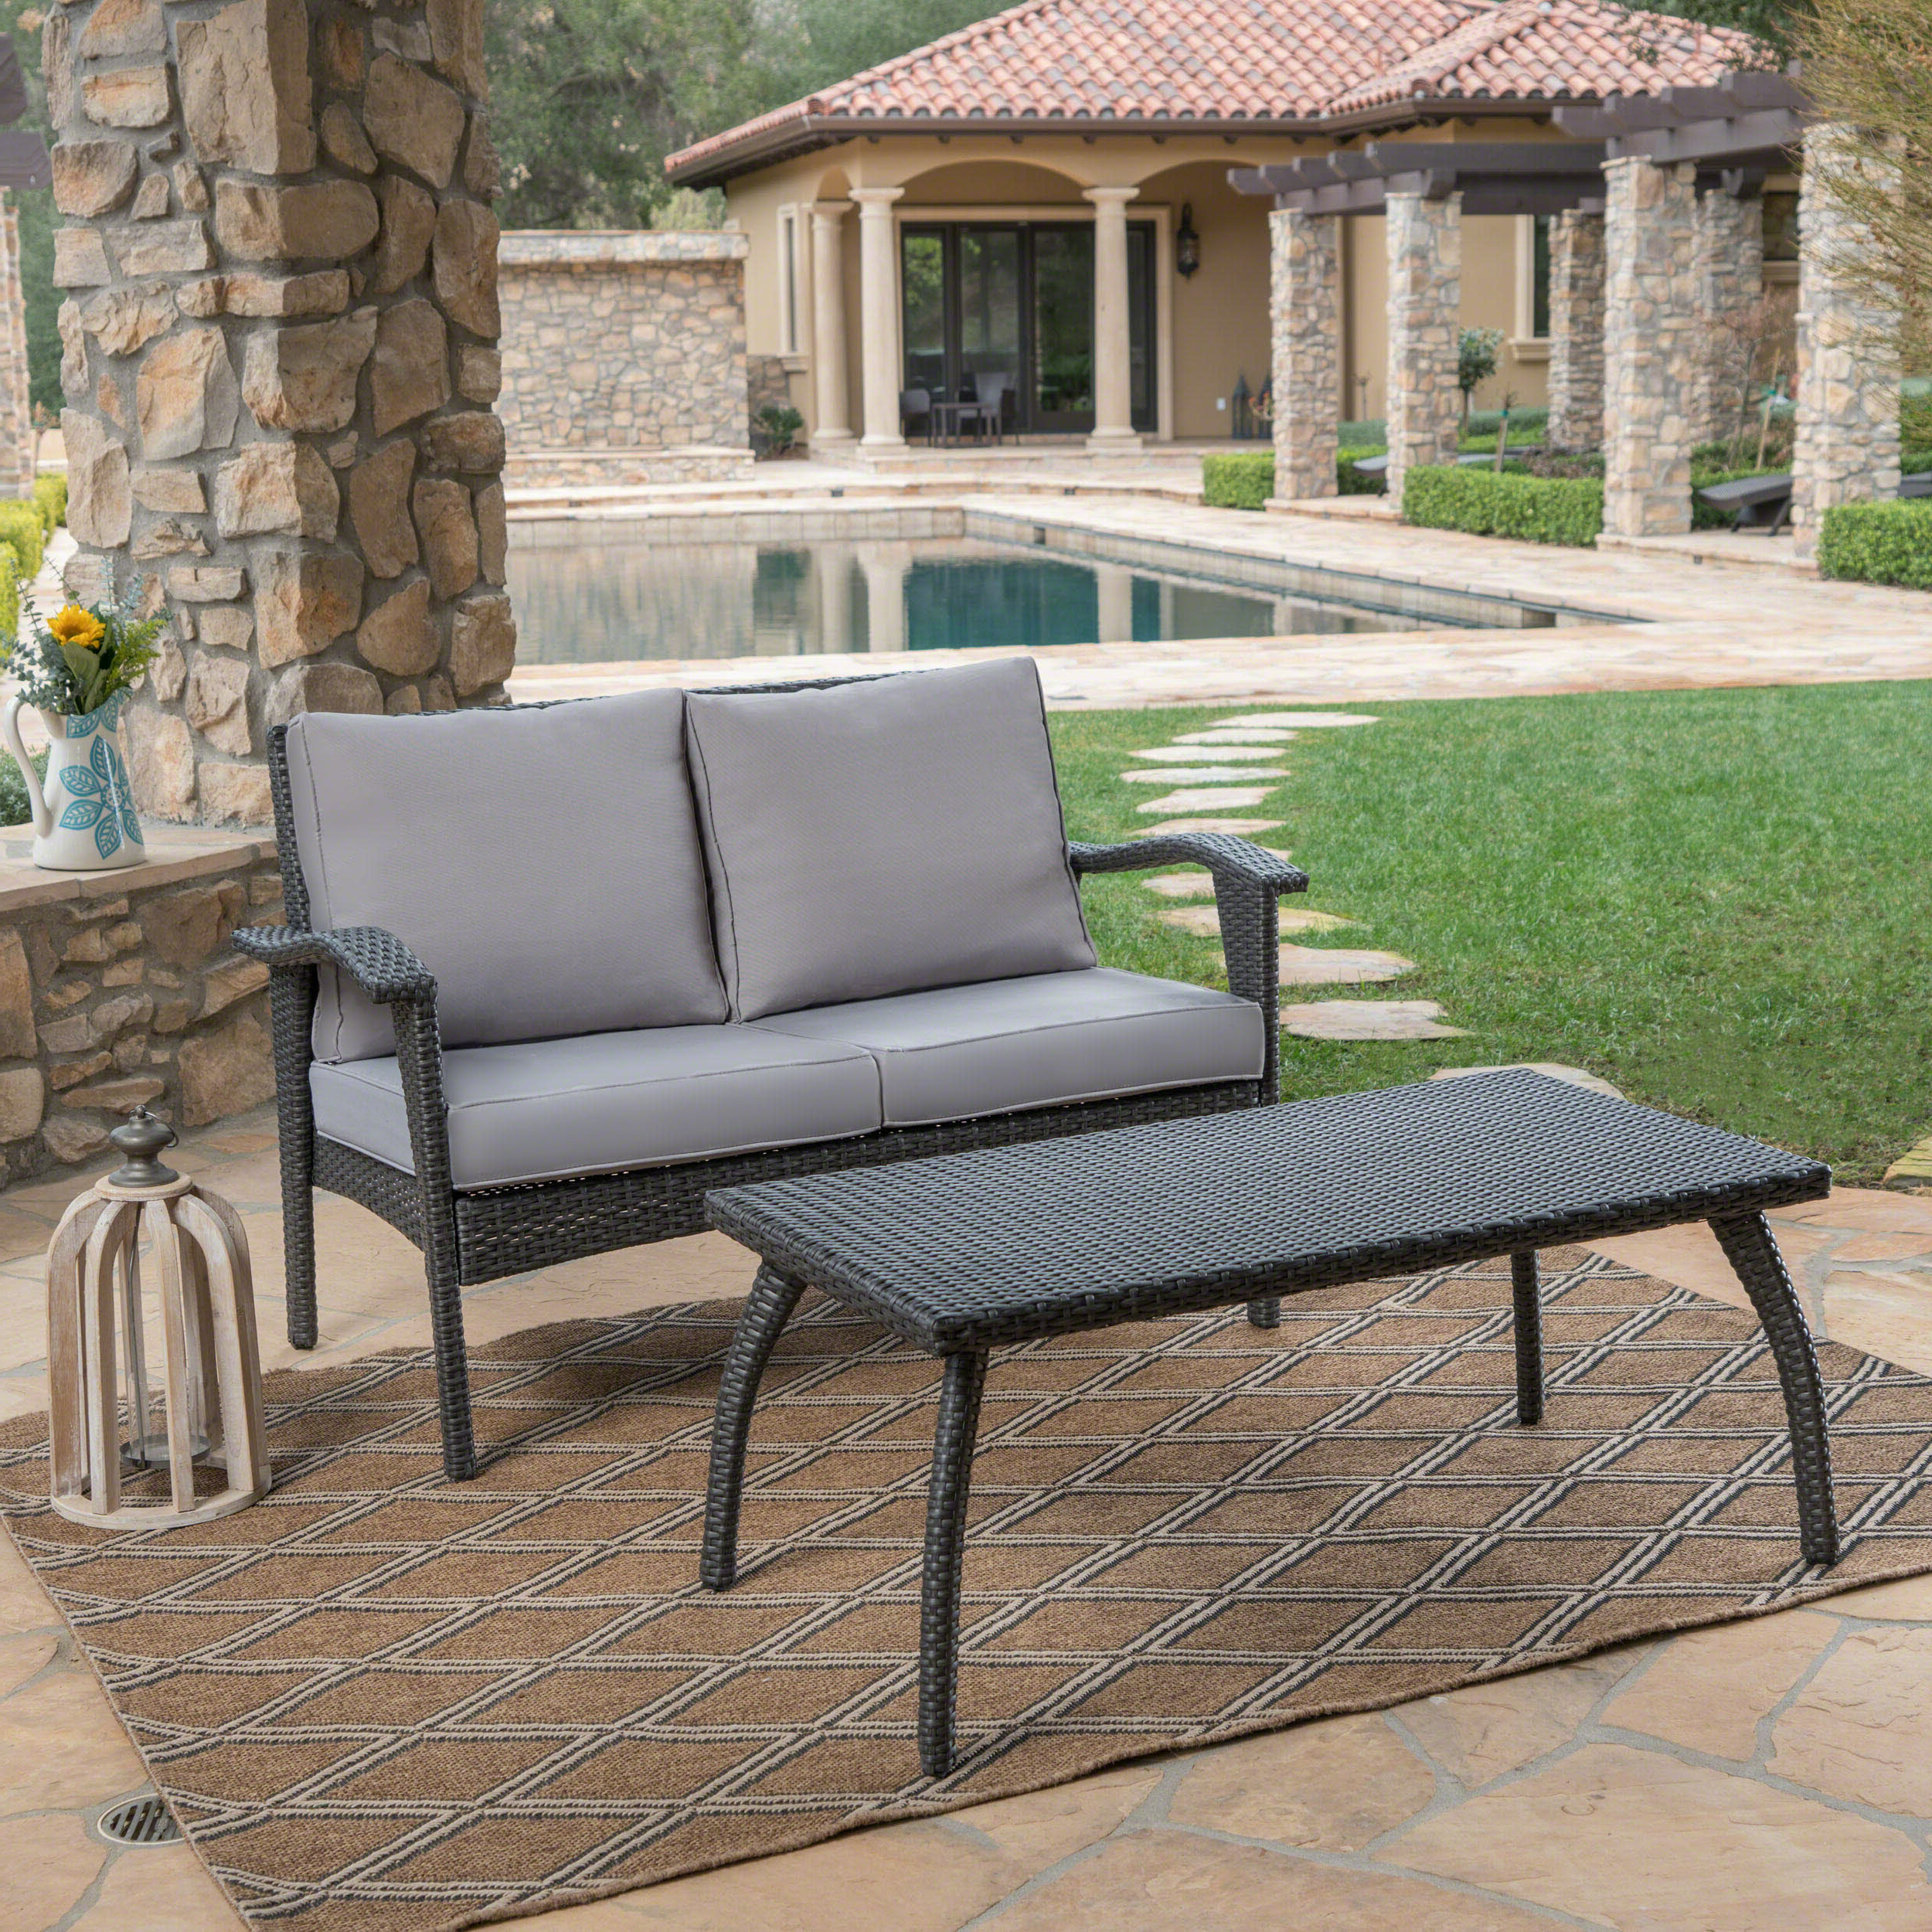 Hagler 2 Piece Sofa Seating Group With Cushions With Regard To Favorite Hagler Outdoor Loveseats With Cushions (View 3 of 25)